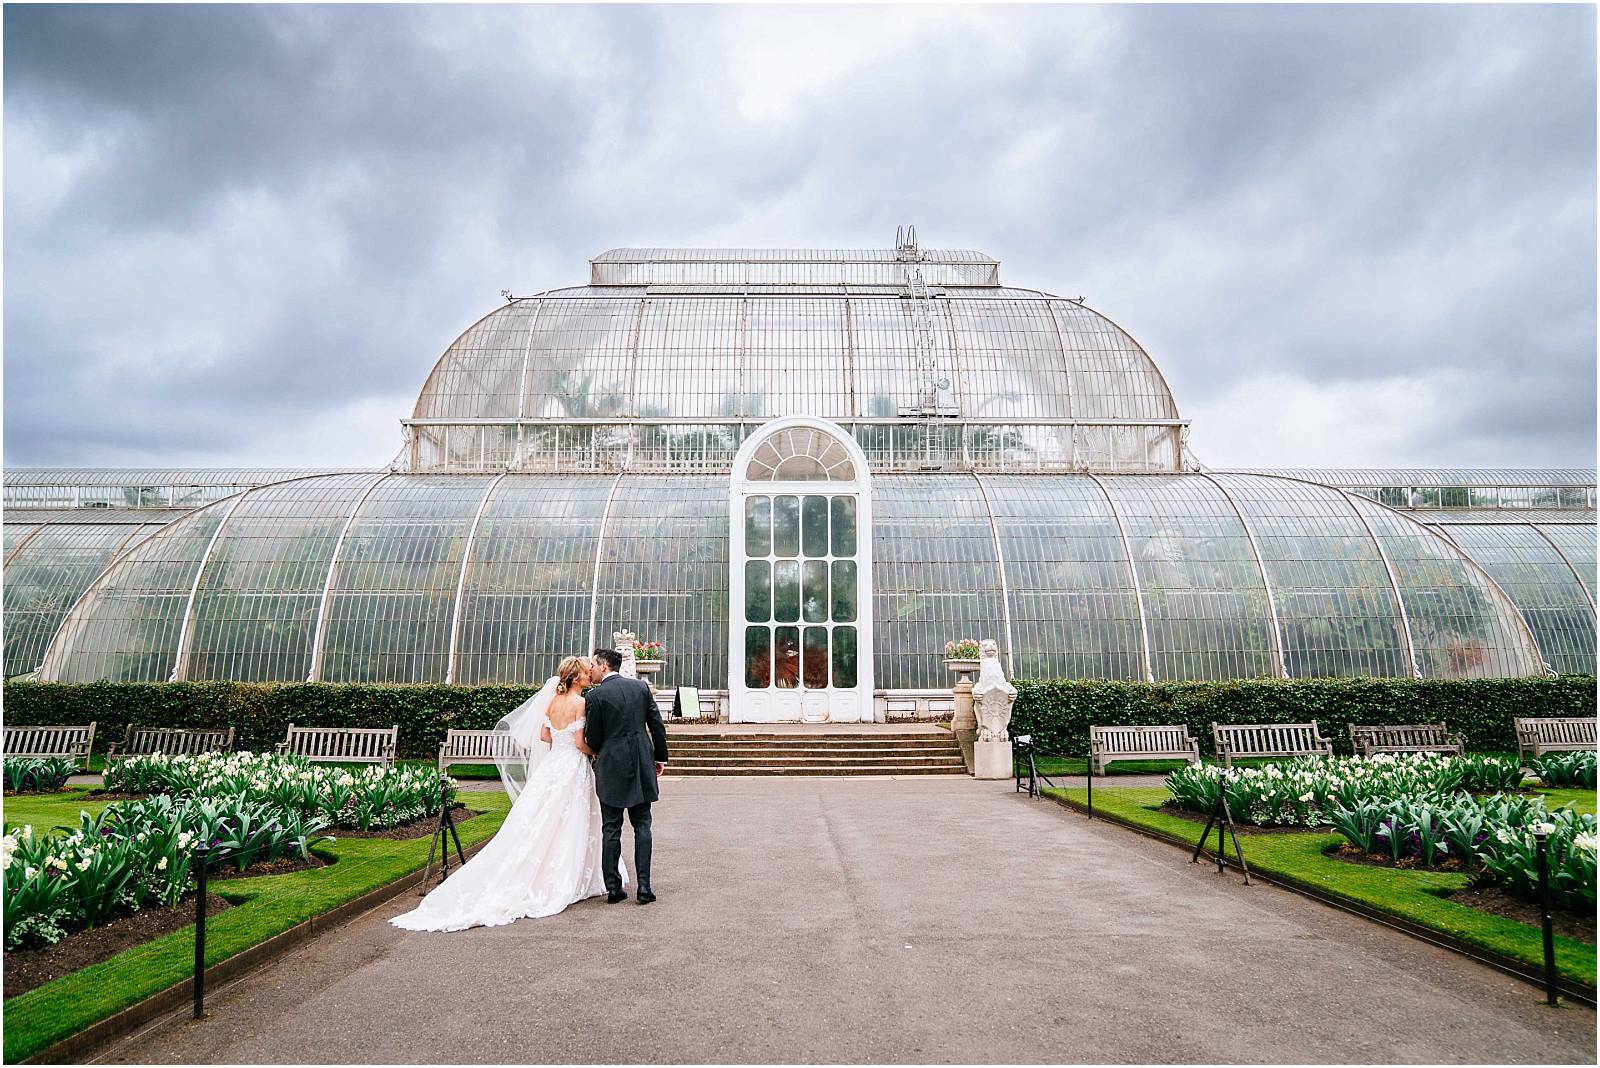 Kew Gardens Wedding Photography – Alice & Henry's Spring Wedding